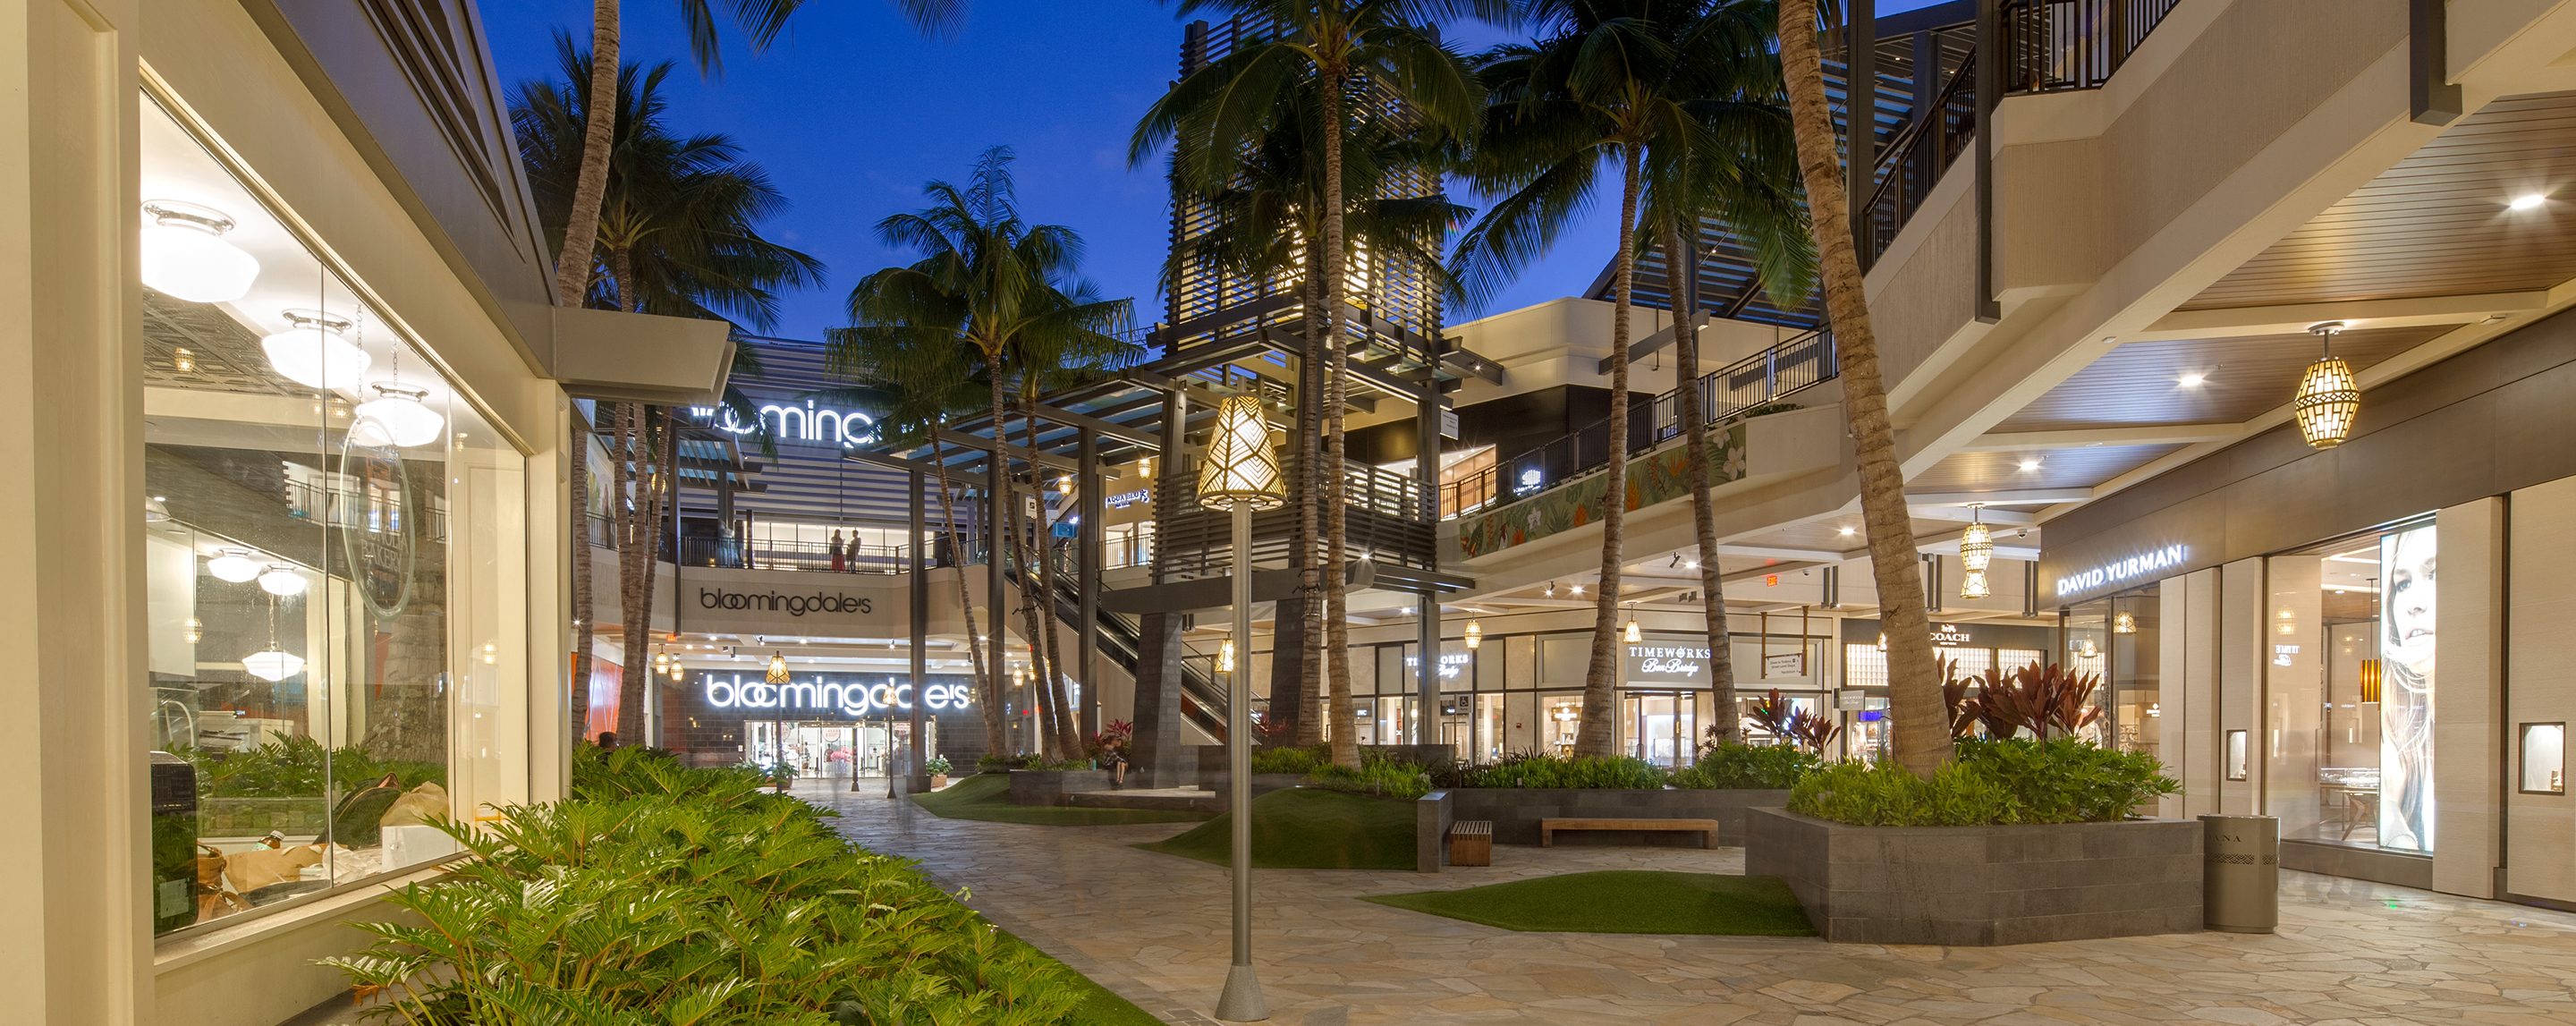 At dusk, an outdoor walkway of a property is lined with lit up store fronts and palm trees.